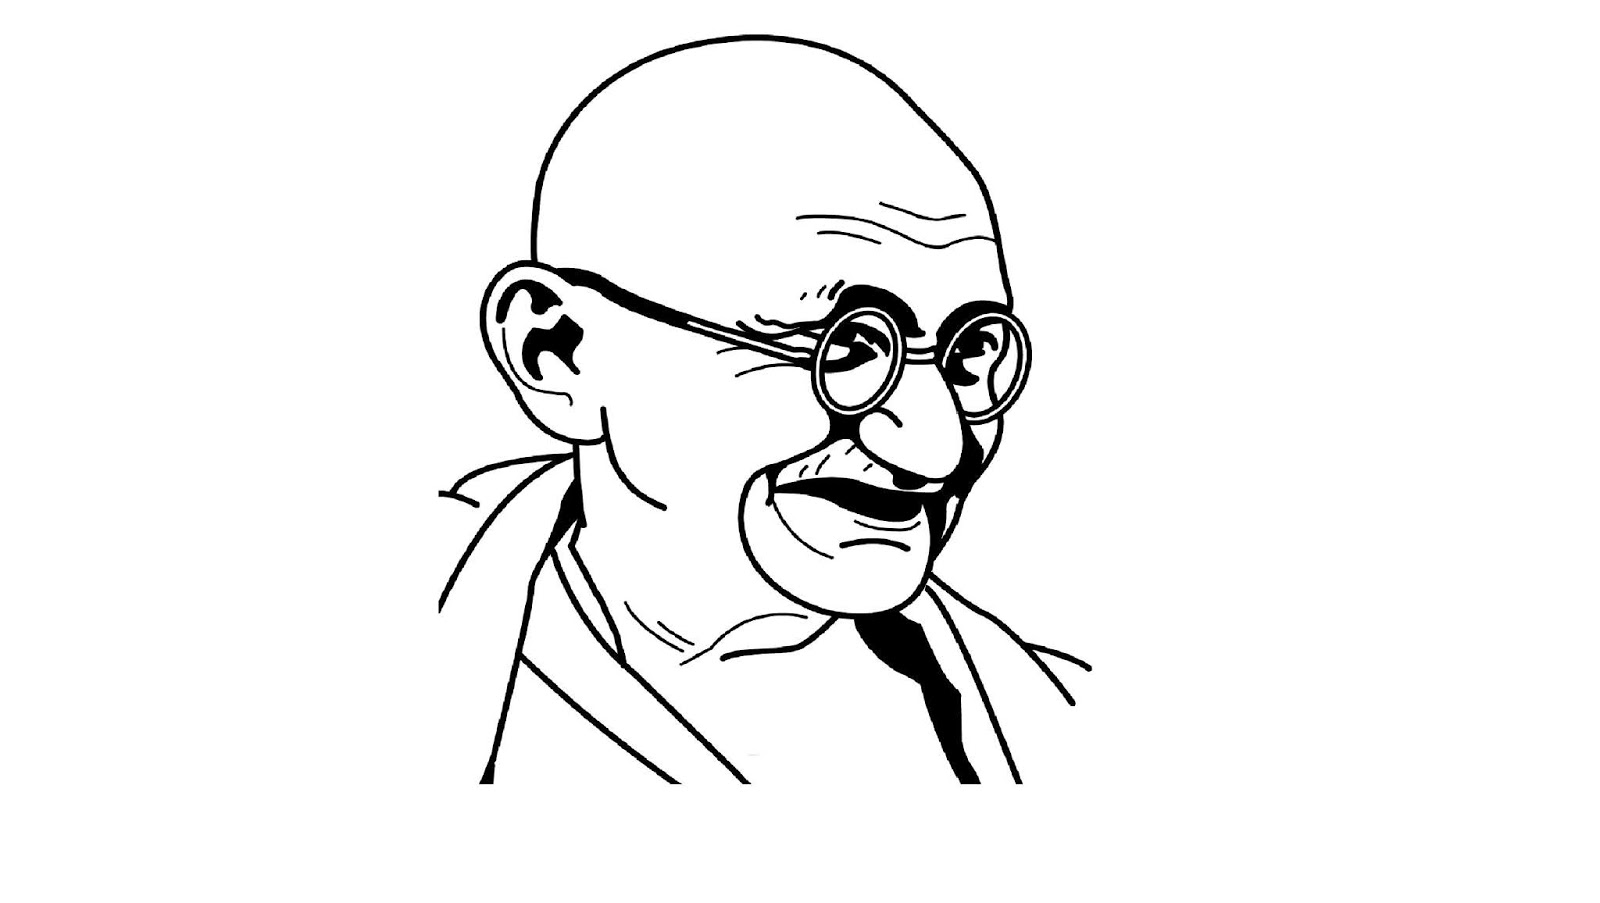 How to Draw Mahatma Gandhi Pencil Drawings Step by step